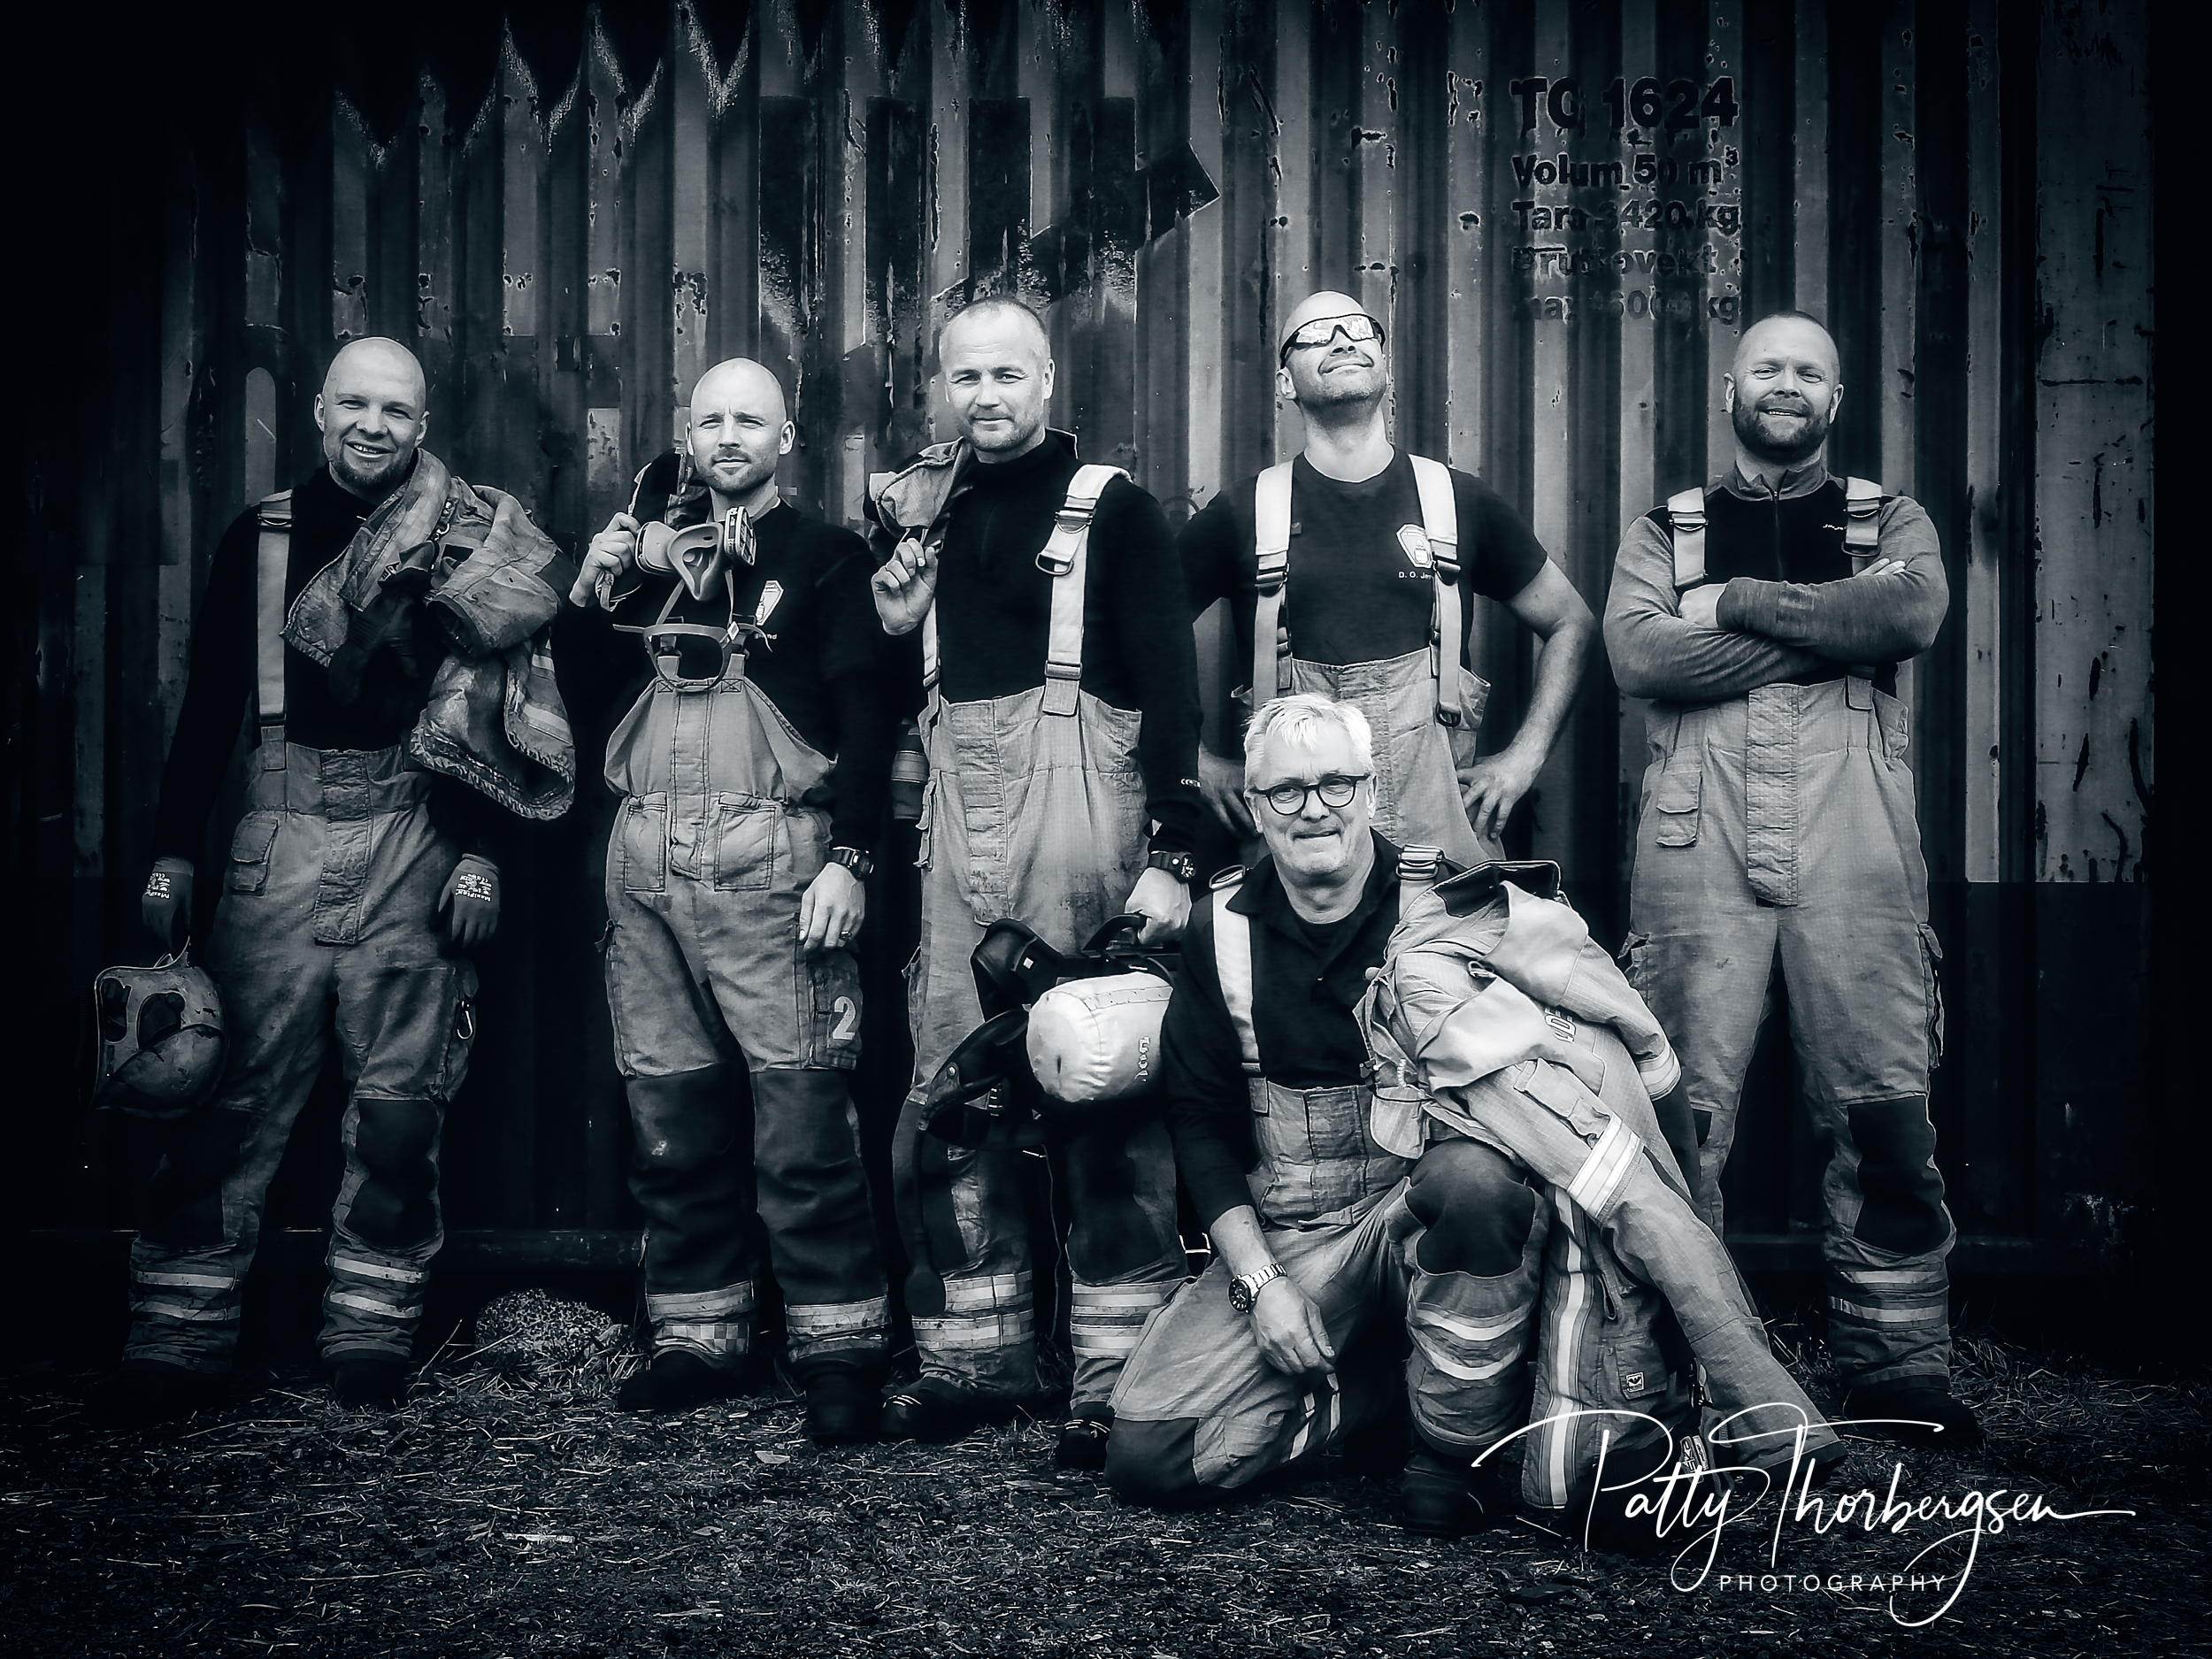 HARSTAD FIREFIGHTERS